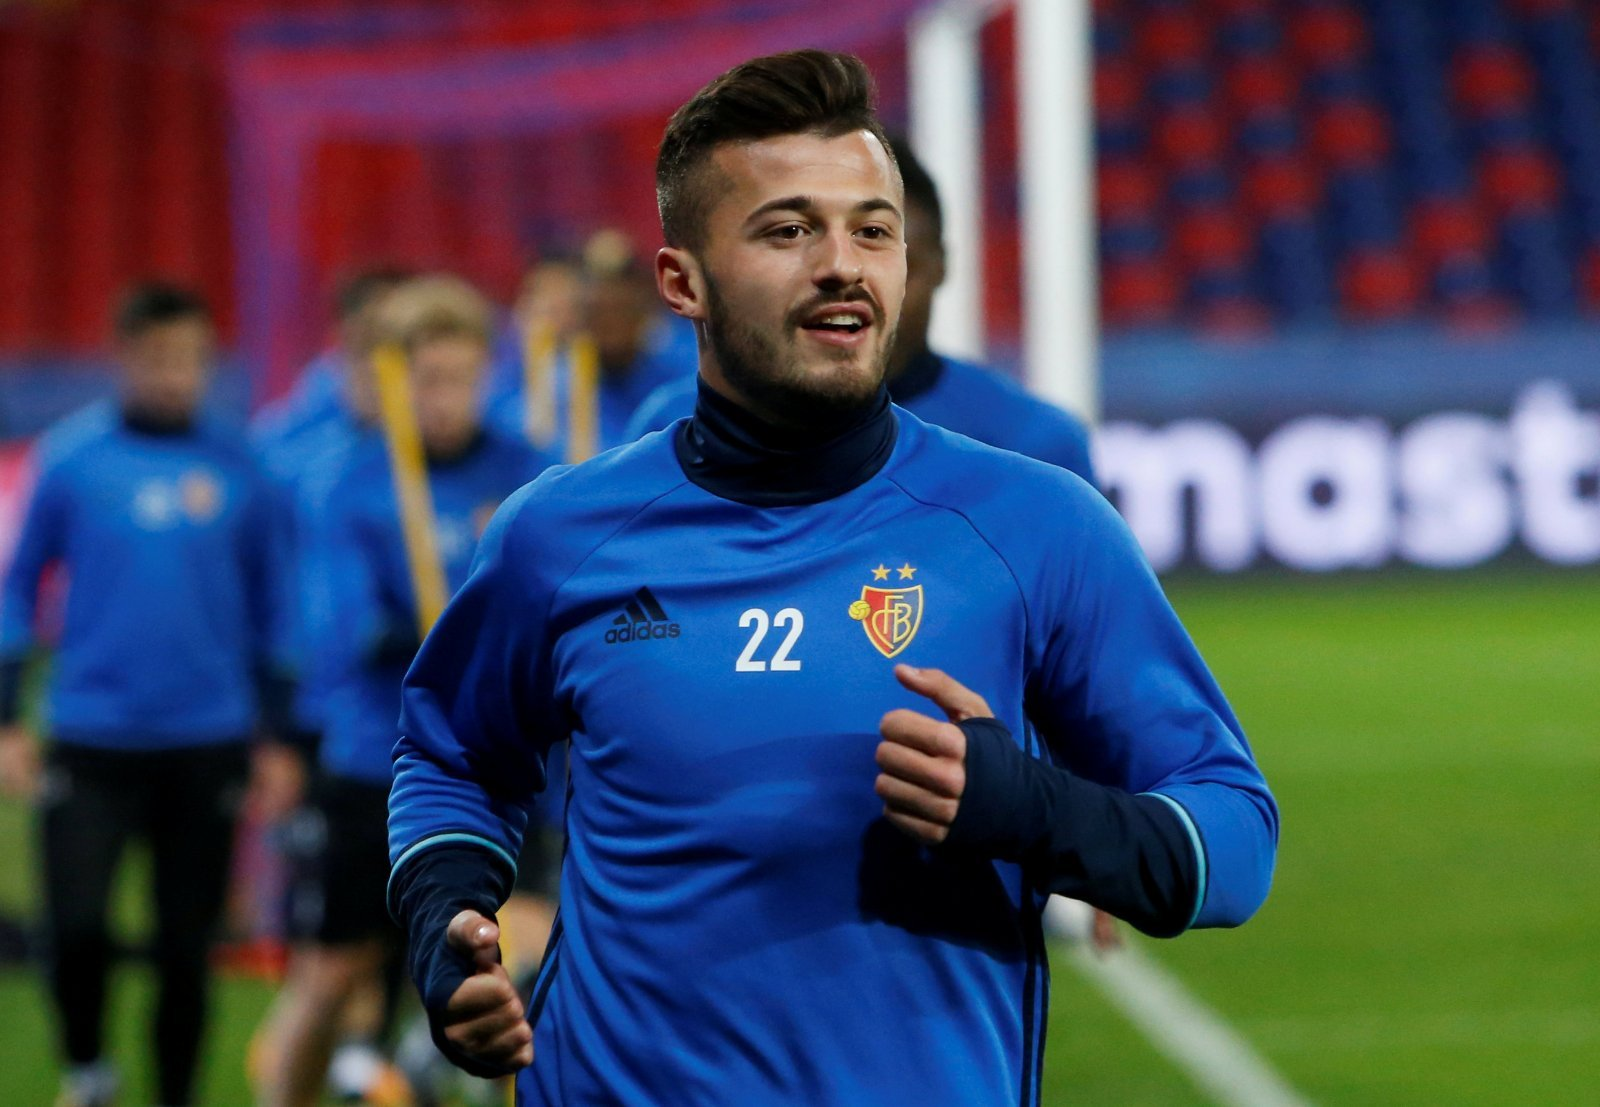 Tottenham could find a quality back-up striker in Albian Ajeti